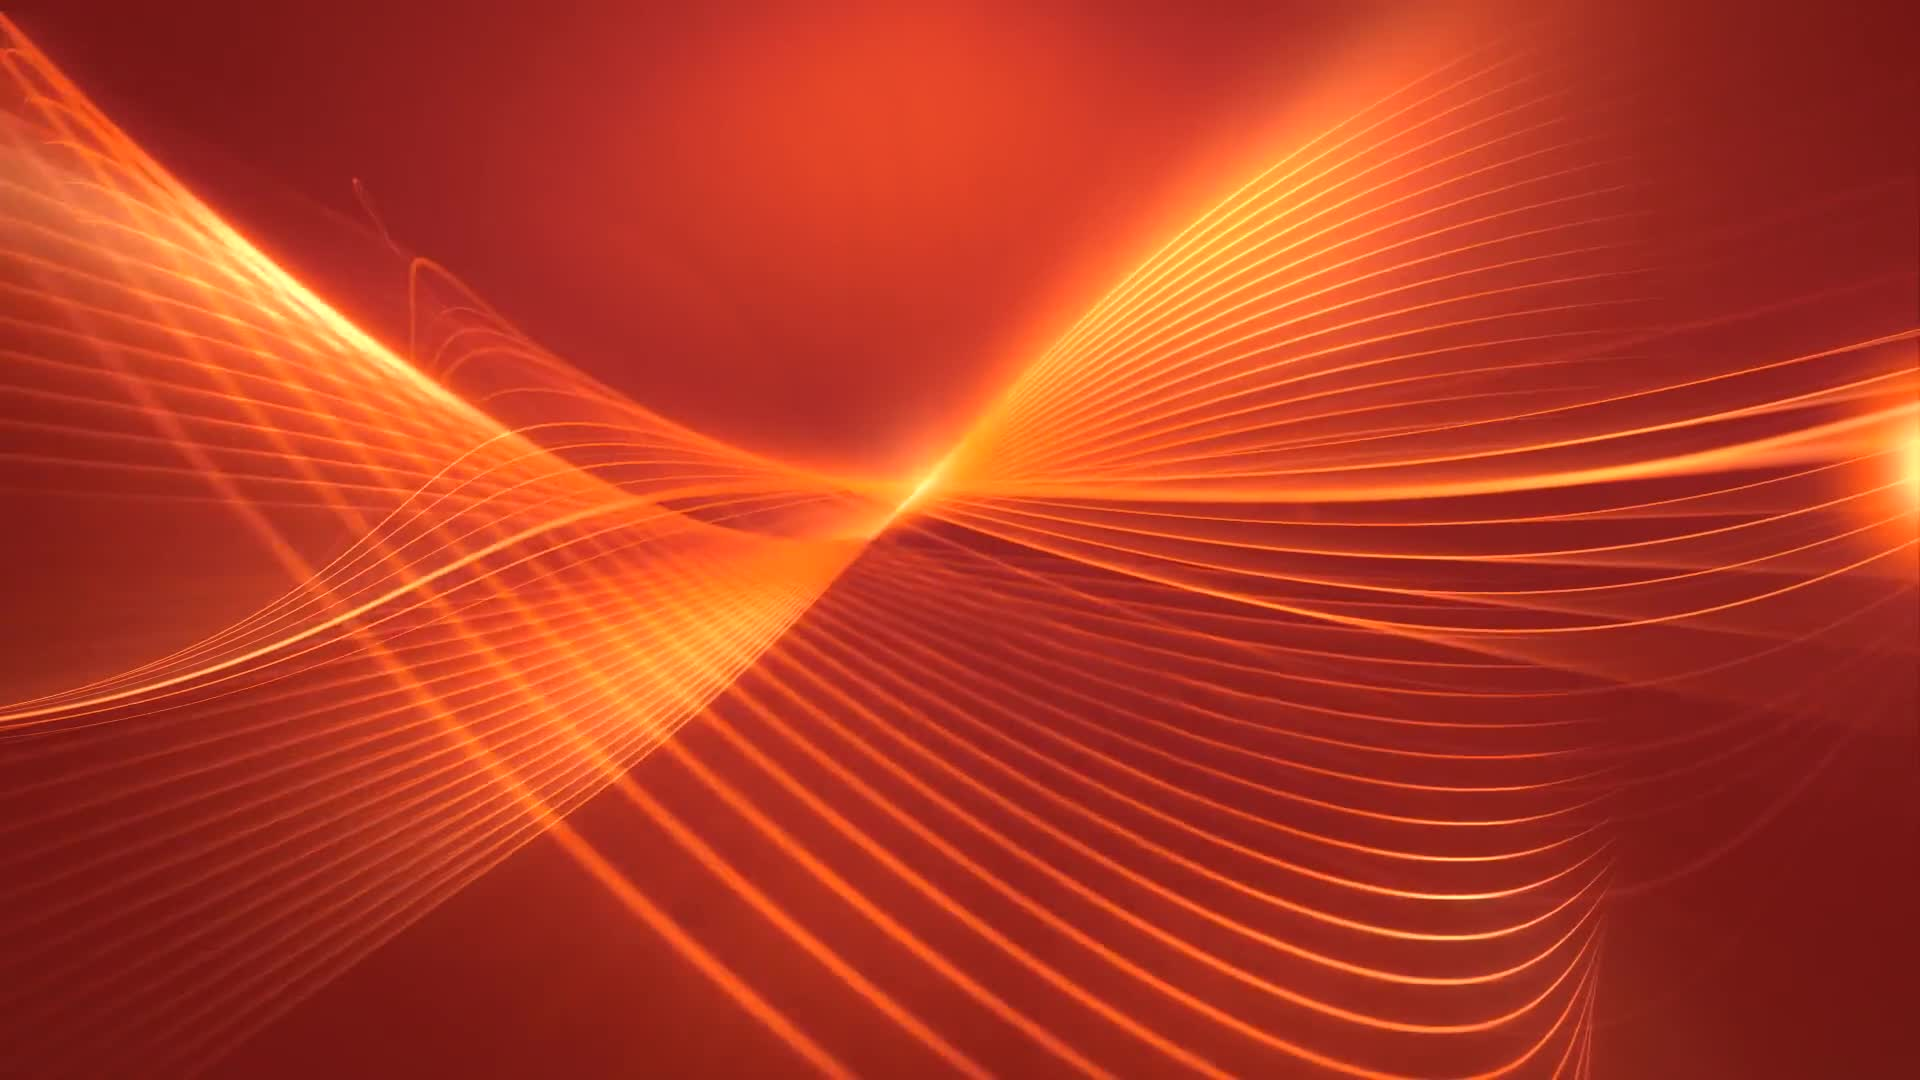 Waves orange lines forms strokes